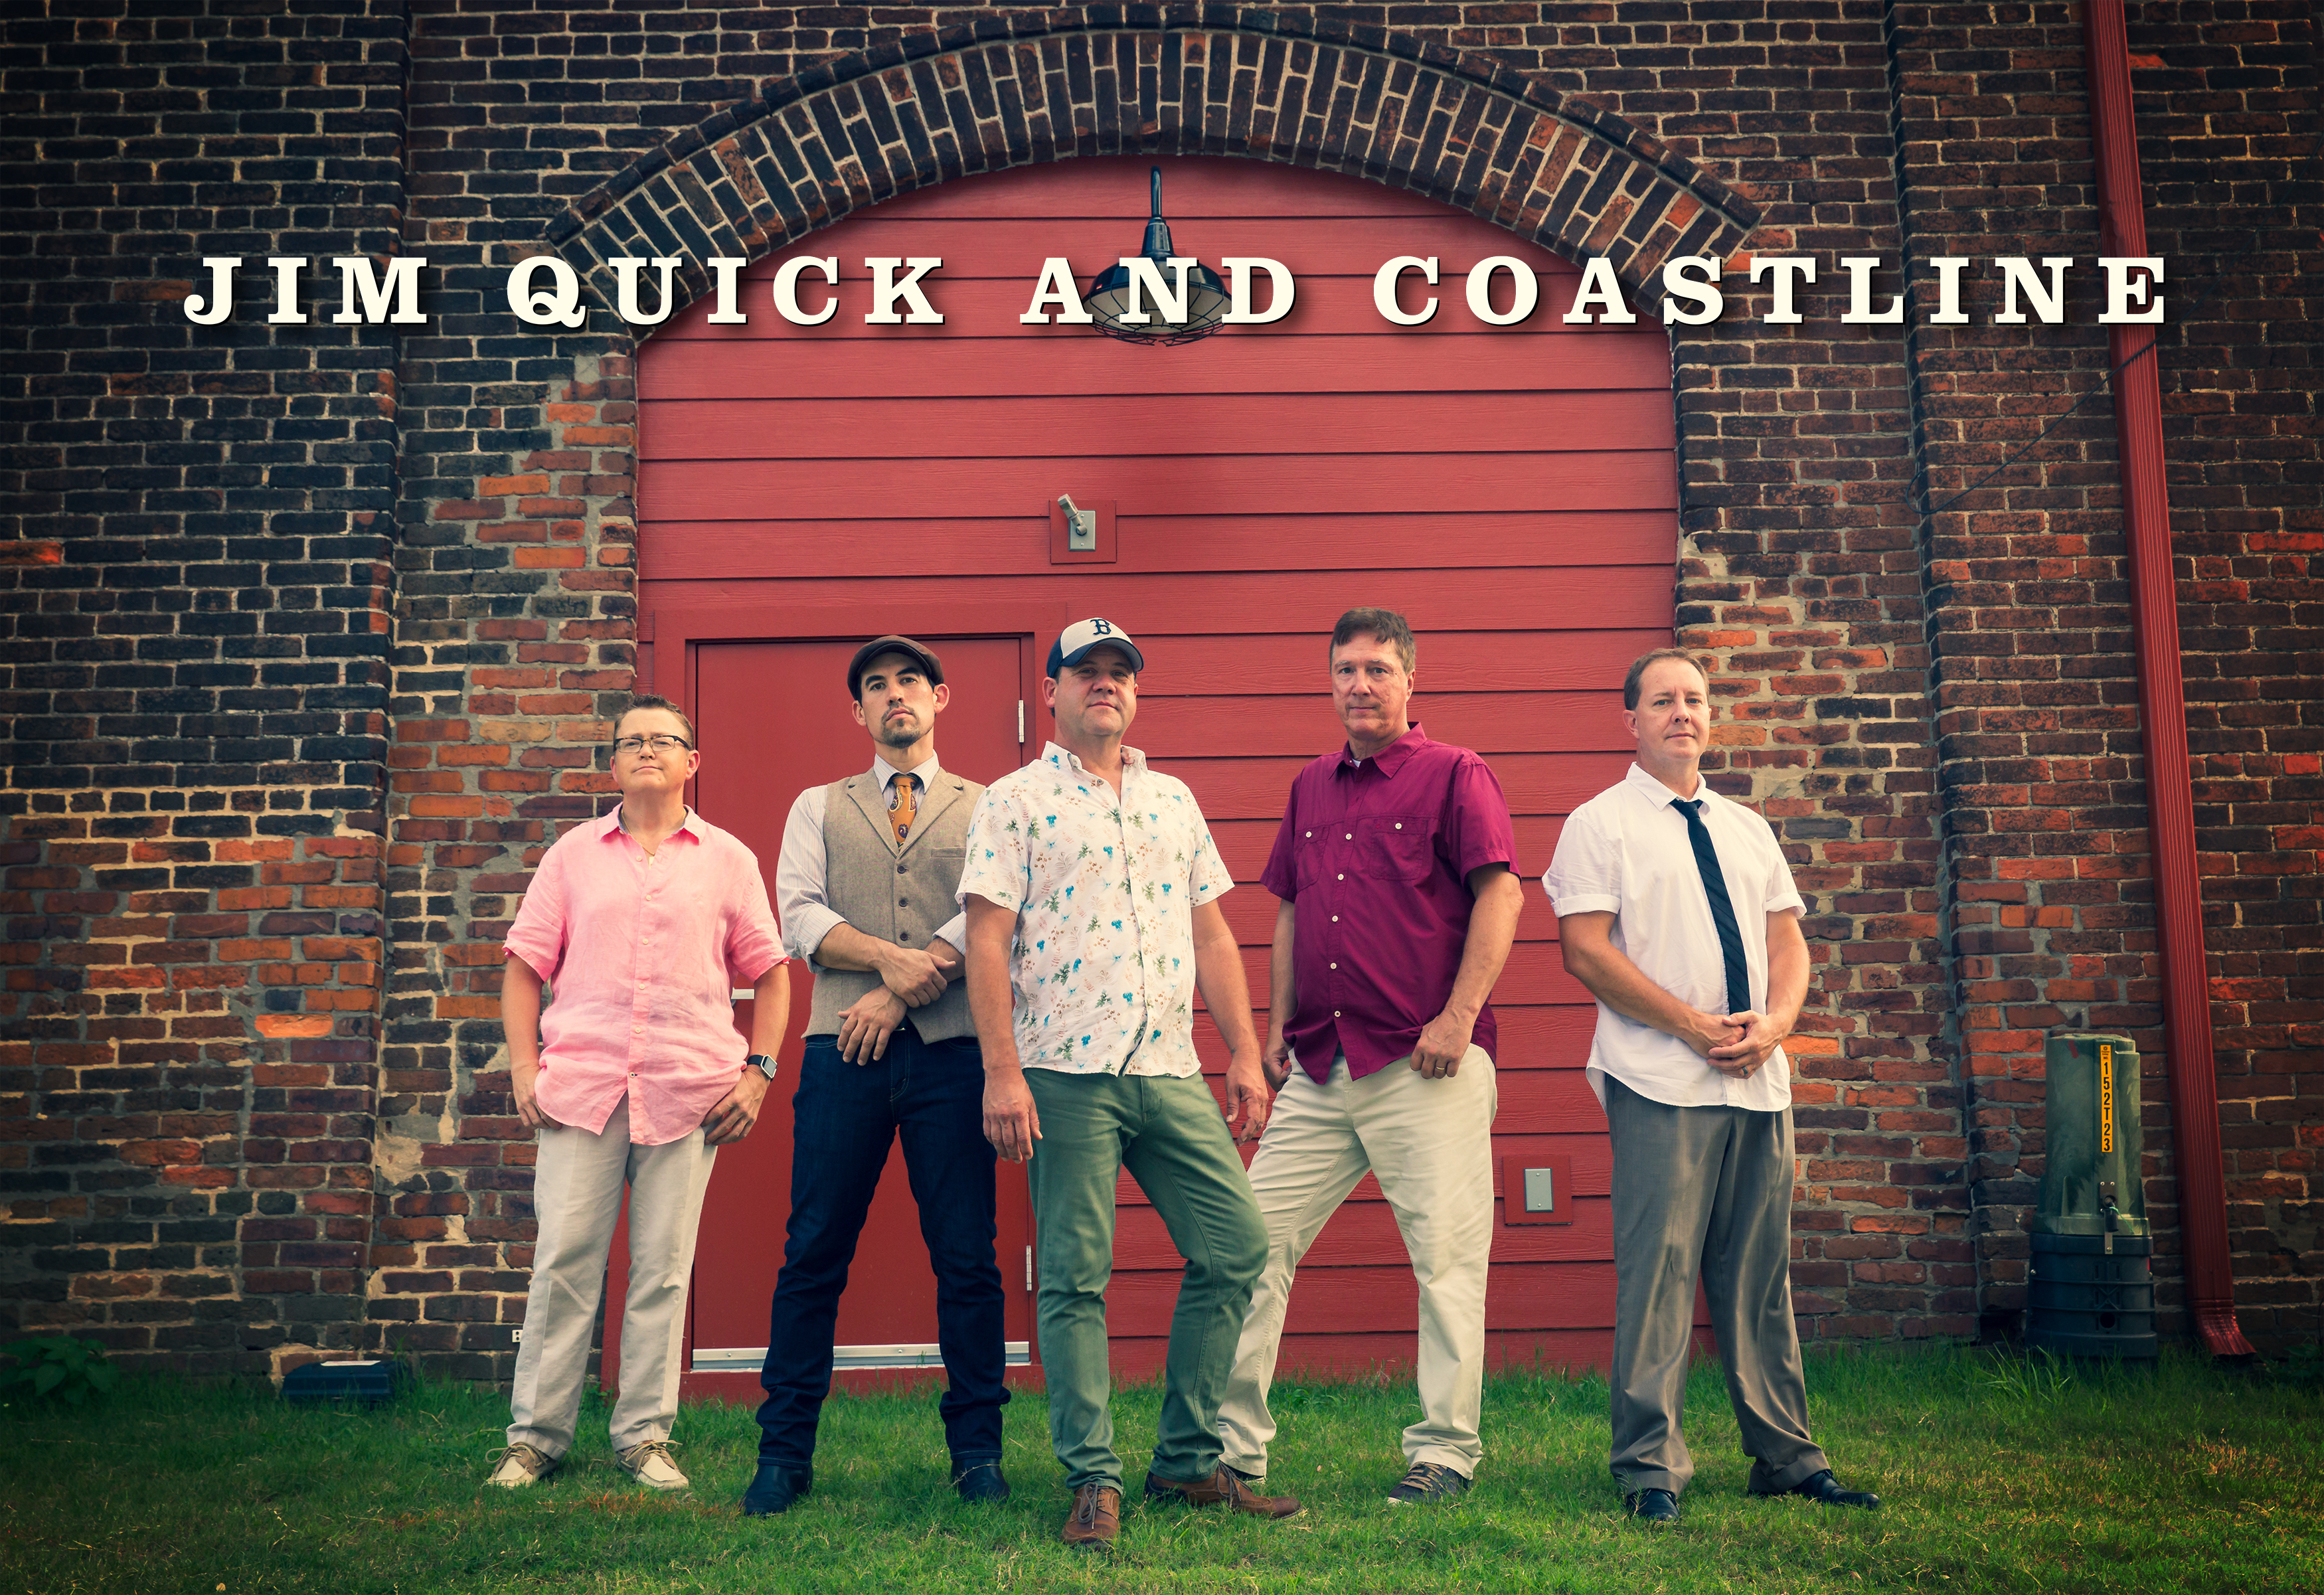 Jimmy Quick and Coastline Band show promo